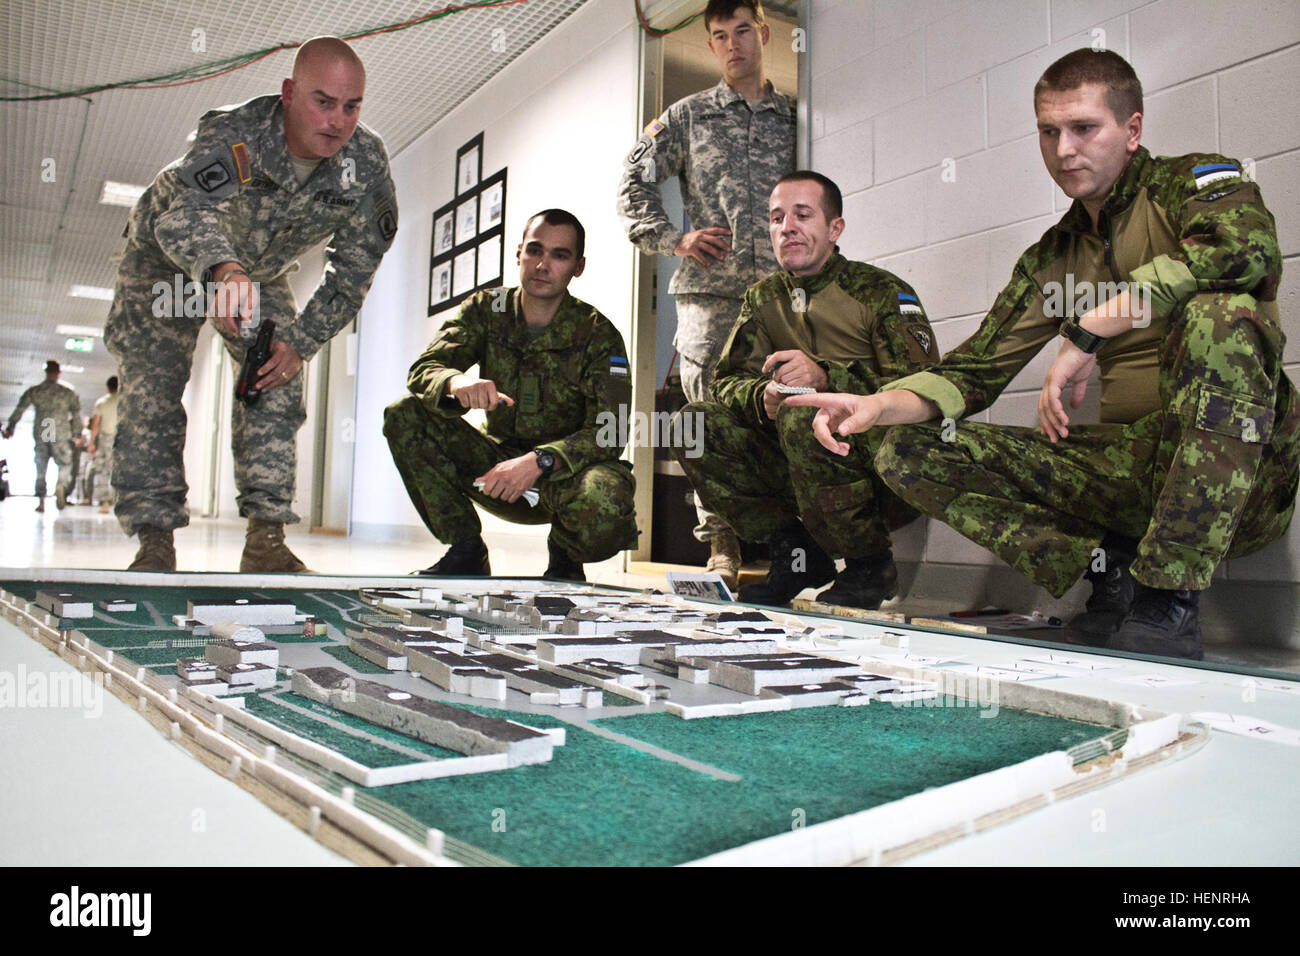 Using a model of an abandoned Soviet era prison as a visual aid, Army Sgt. 1st Class Derek J. Ertmer (left), a Stockton, Stock Photo